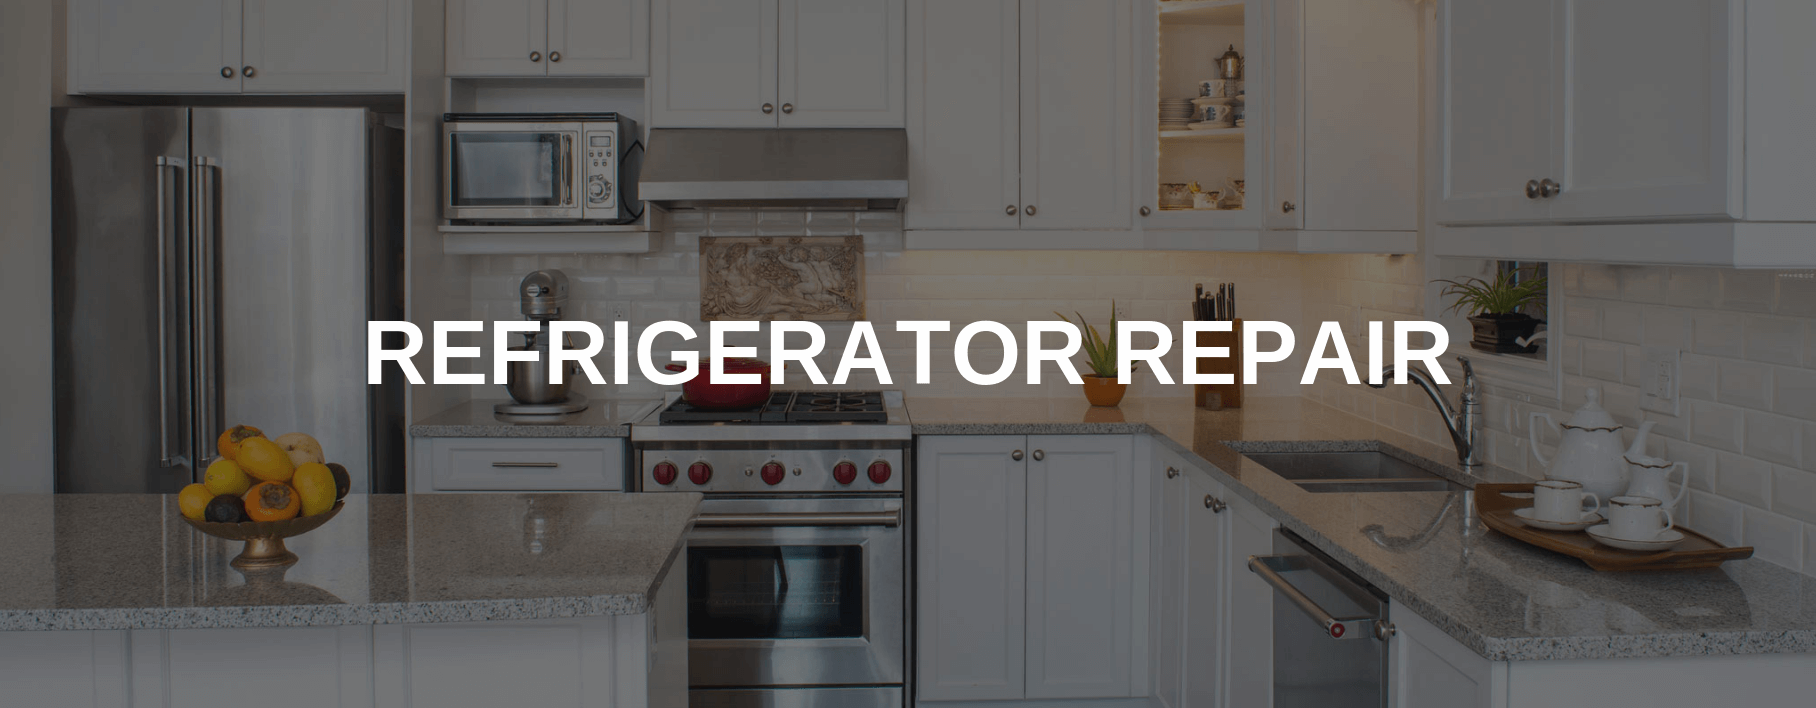 refrigerator repair madison